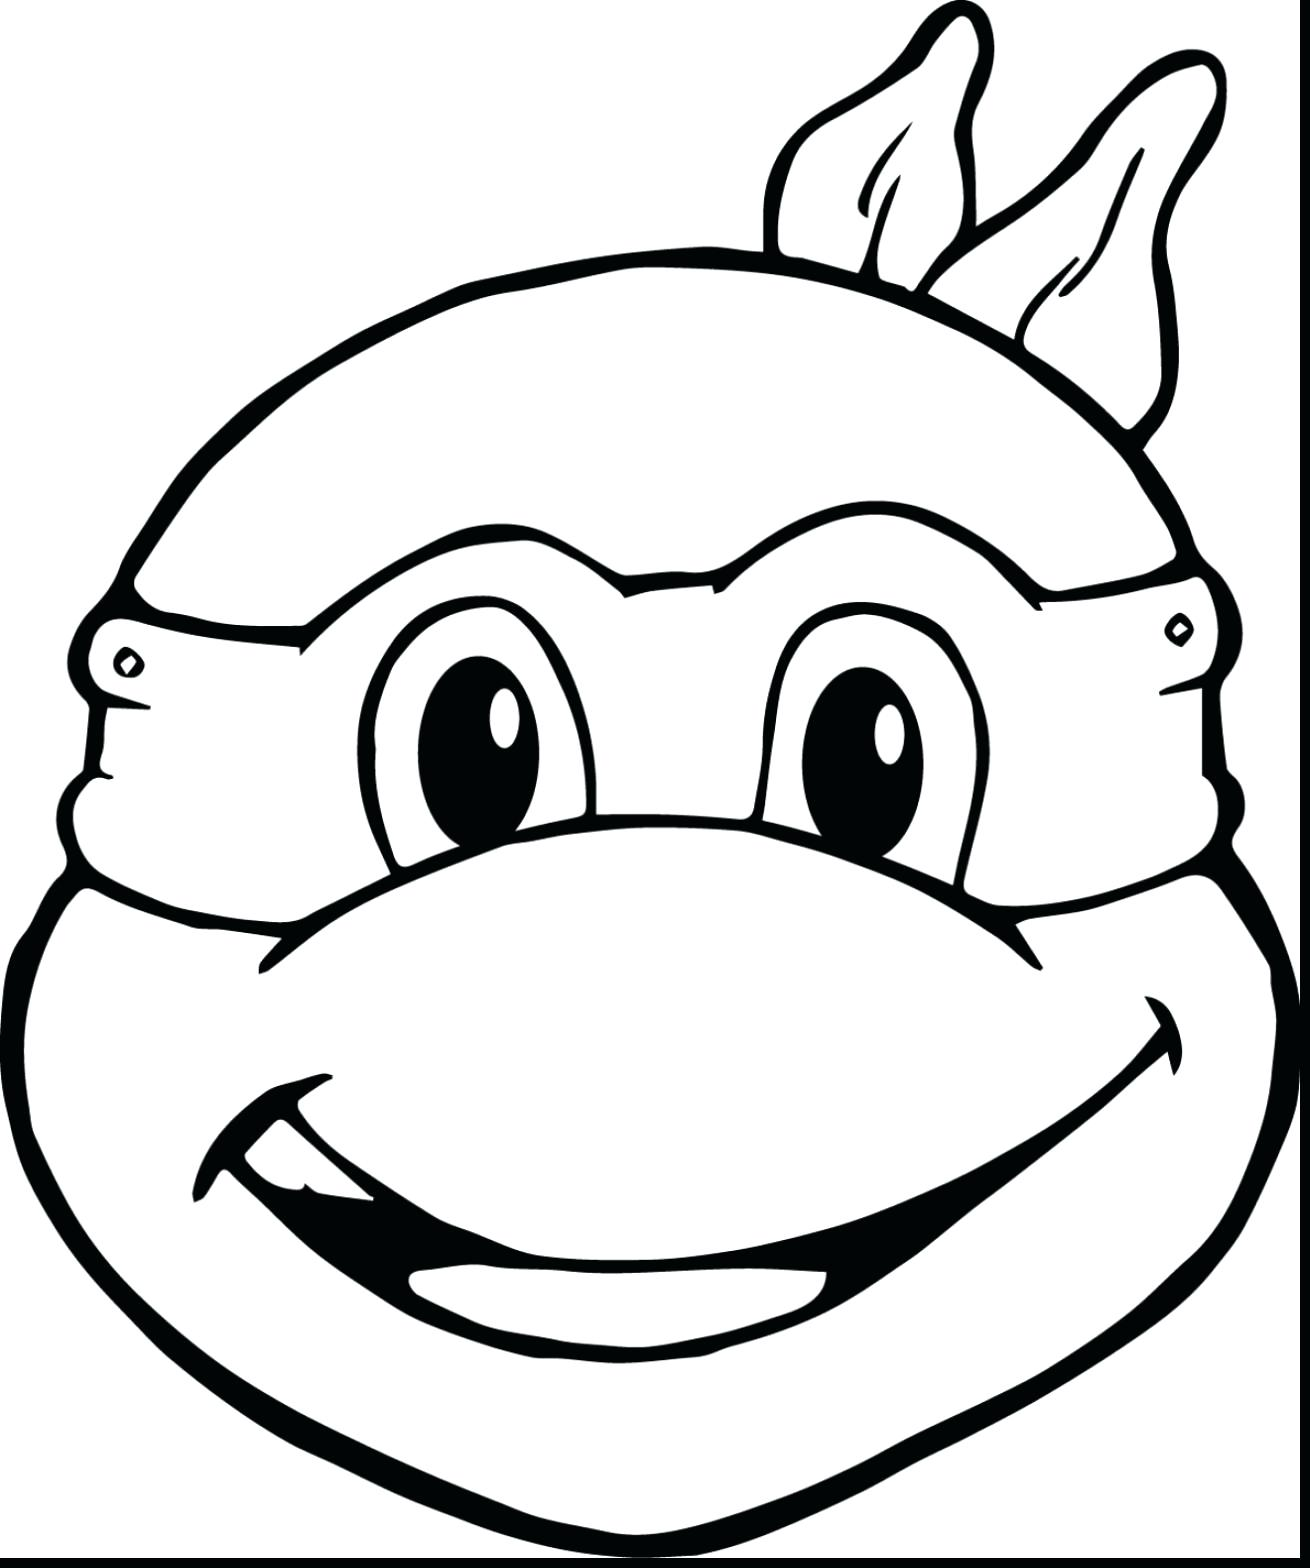 Ninja Turtle Coloring Pages For Toddlers at GetDrawings.com | Free ...